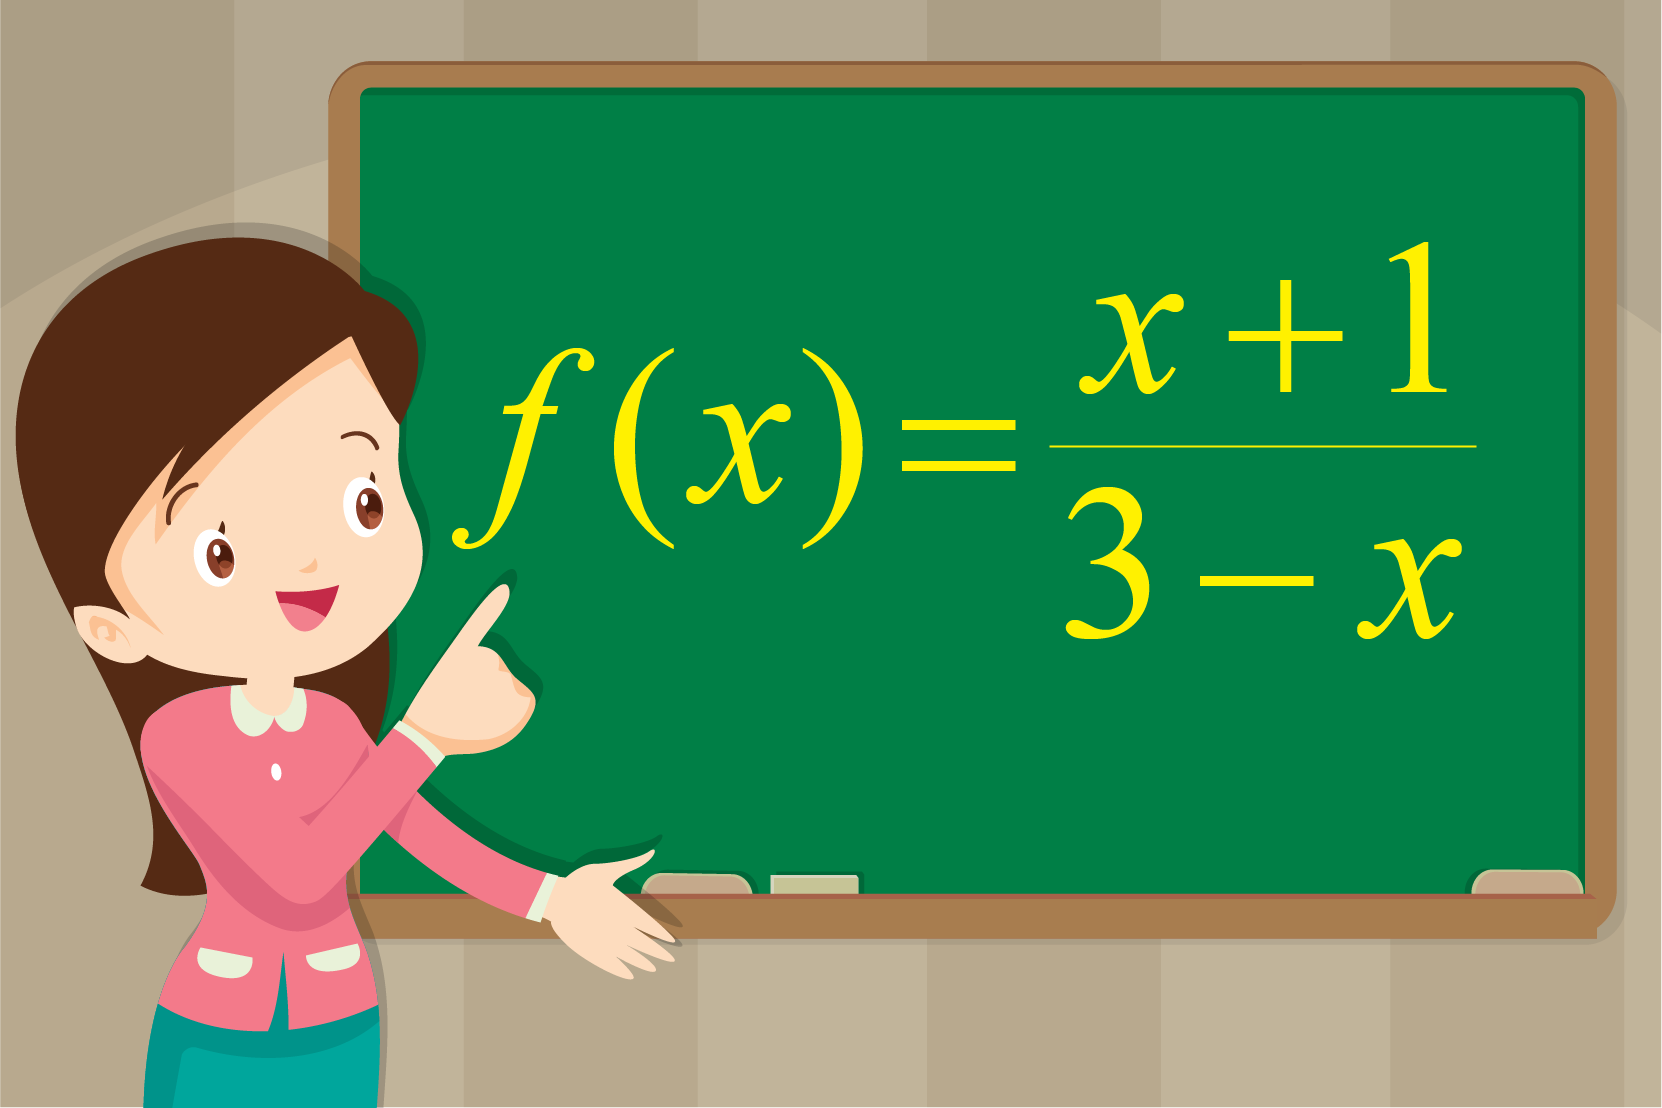 Find the domain and range of the given function.